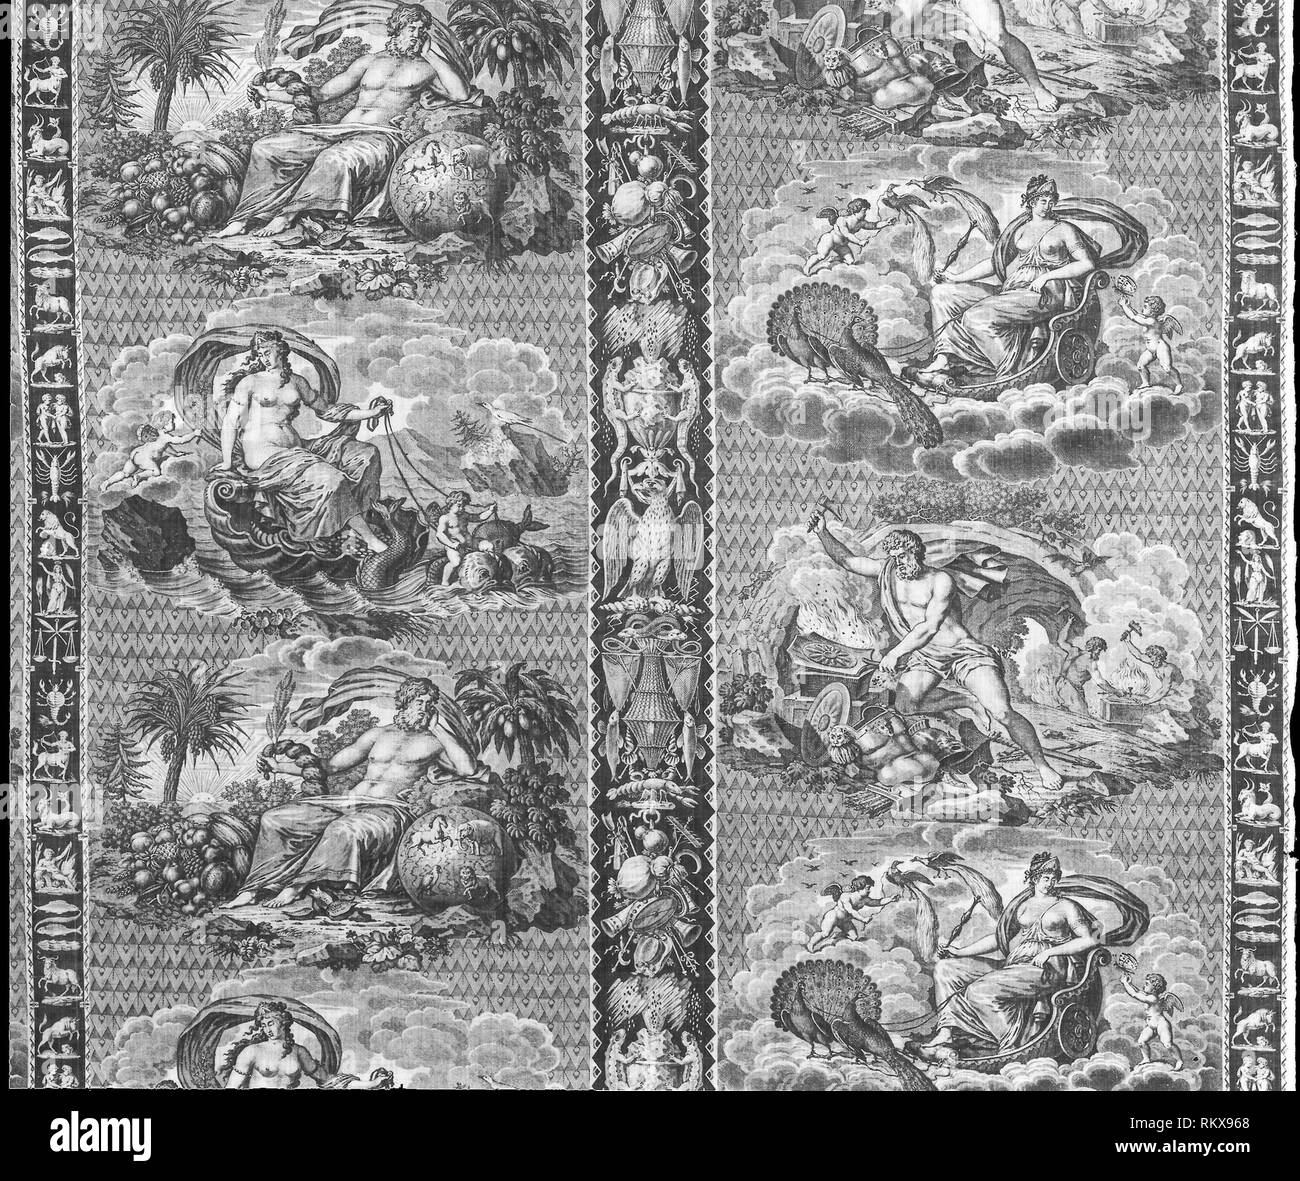 The Elements (Furnishing Fabric) - c. 1810 - Designed by Marie Bonaventure Lebert (French, 1759–1836) Manufactured by Hartmann et Fils (French, - Stock Image